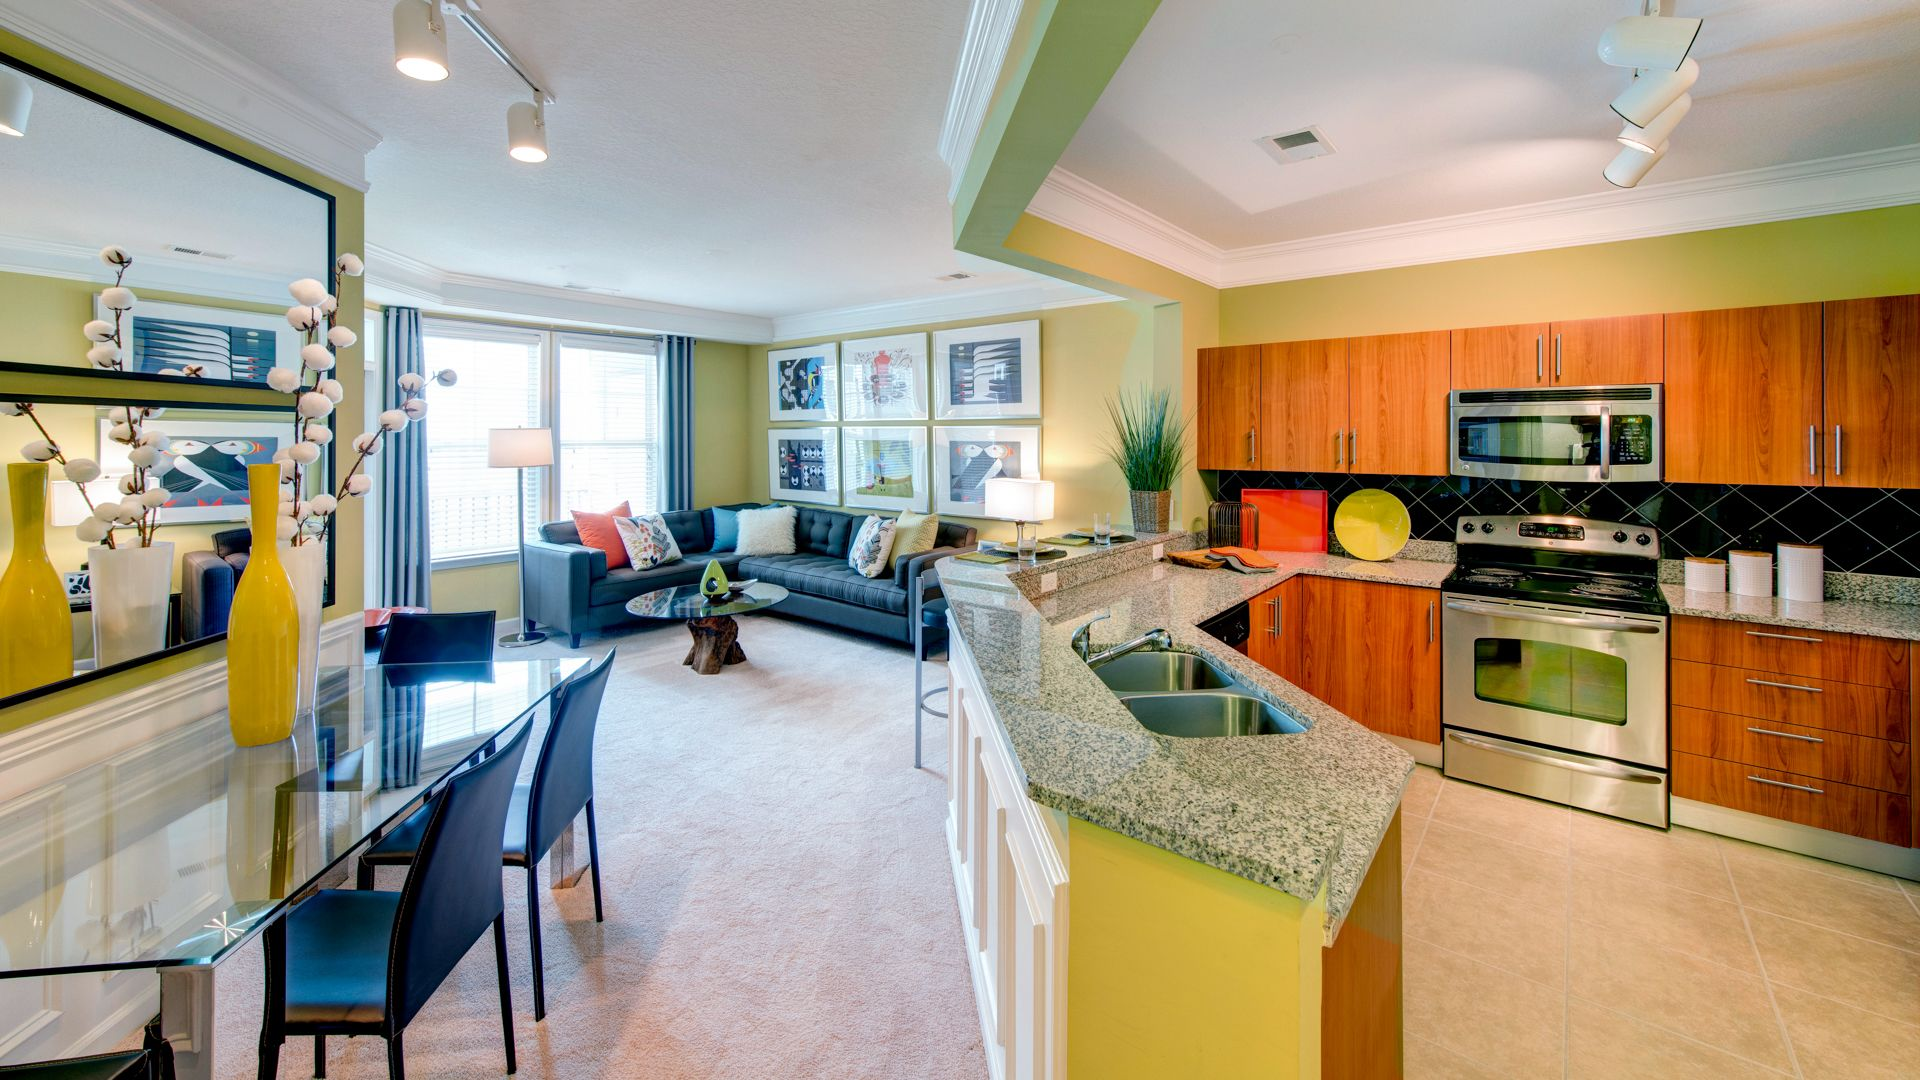 Gaithersburg station apartments gaithersburg 370 east diamond avenue for 1 bedroom apartments in gaithersburg md